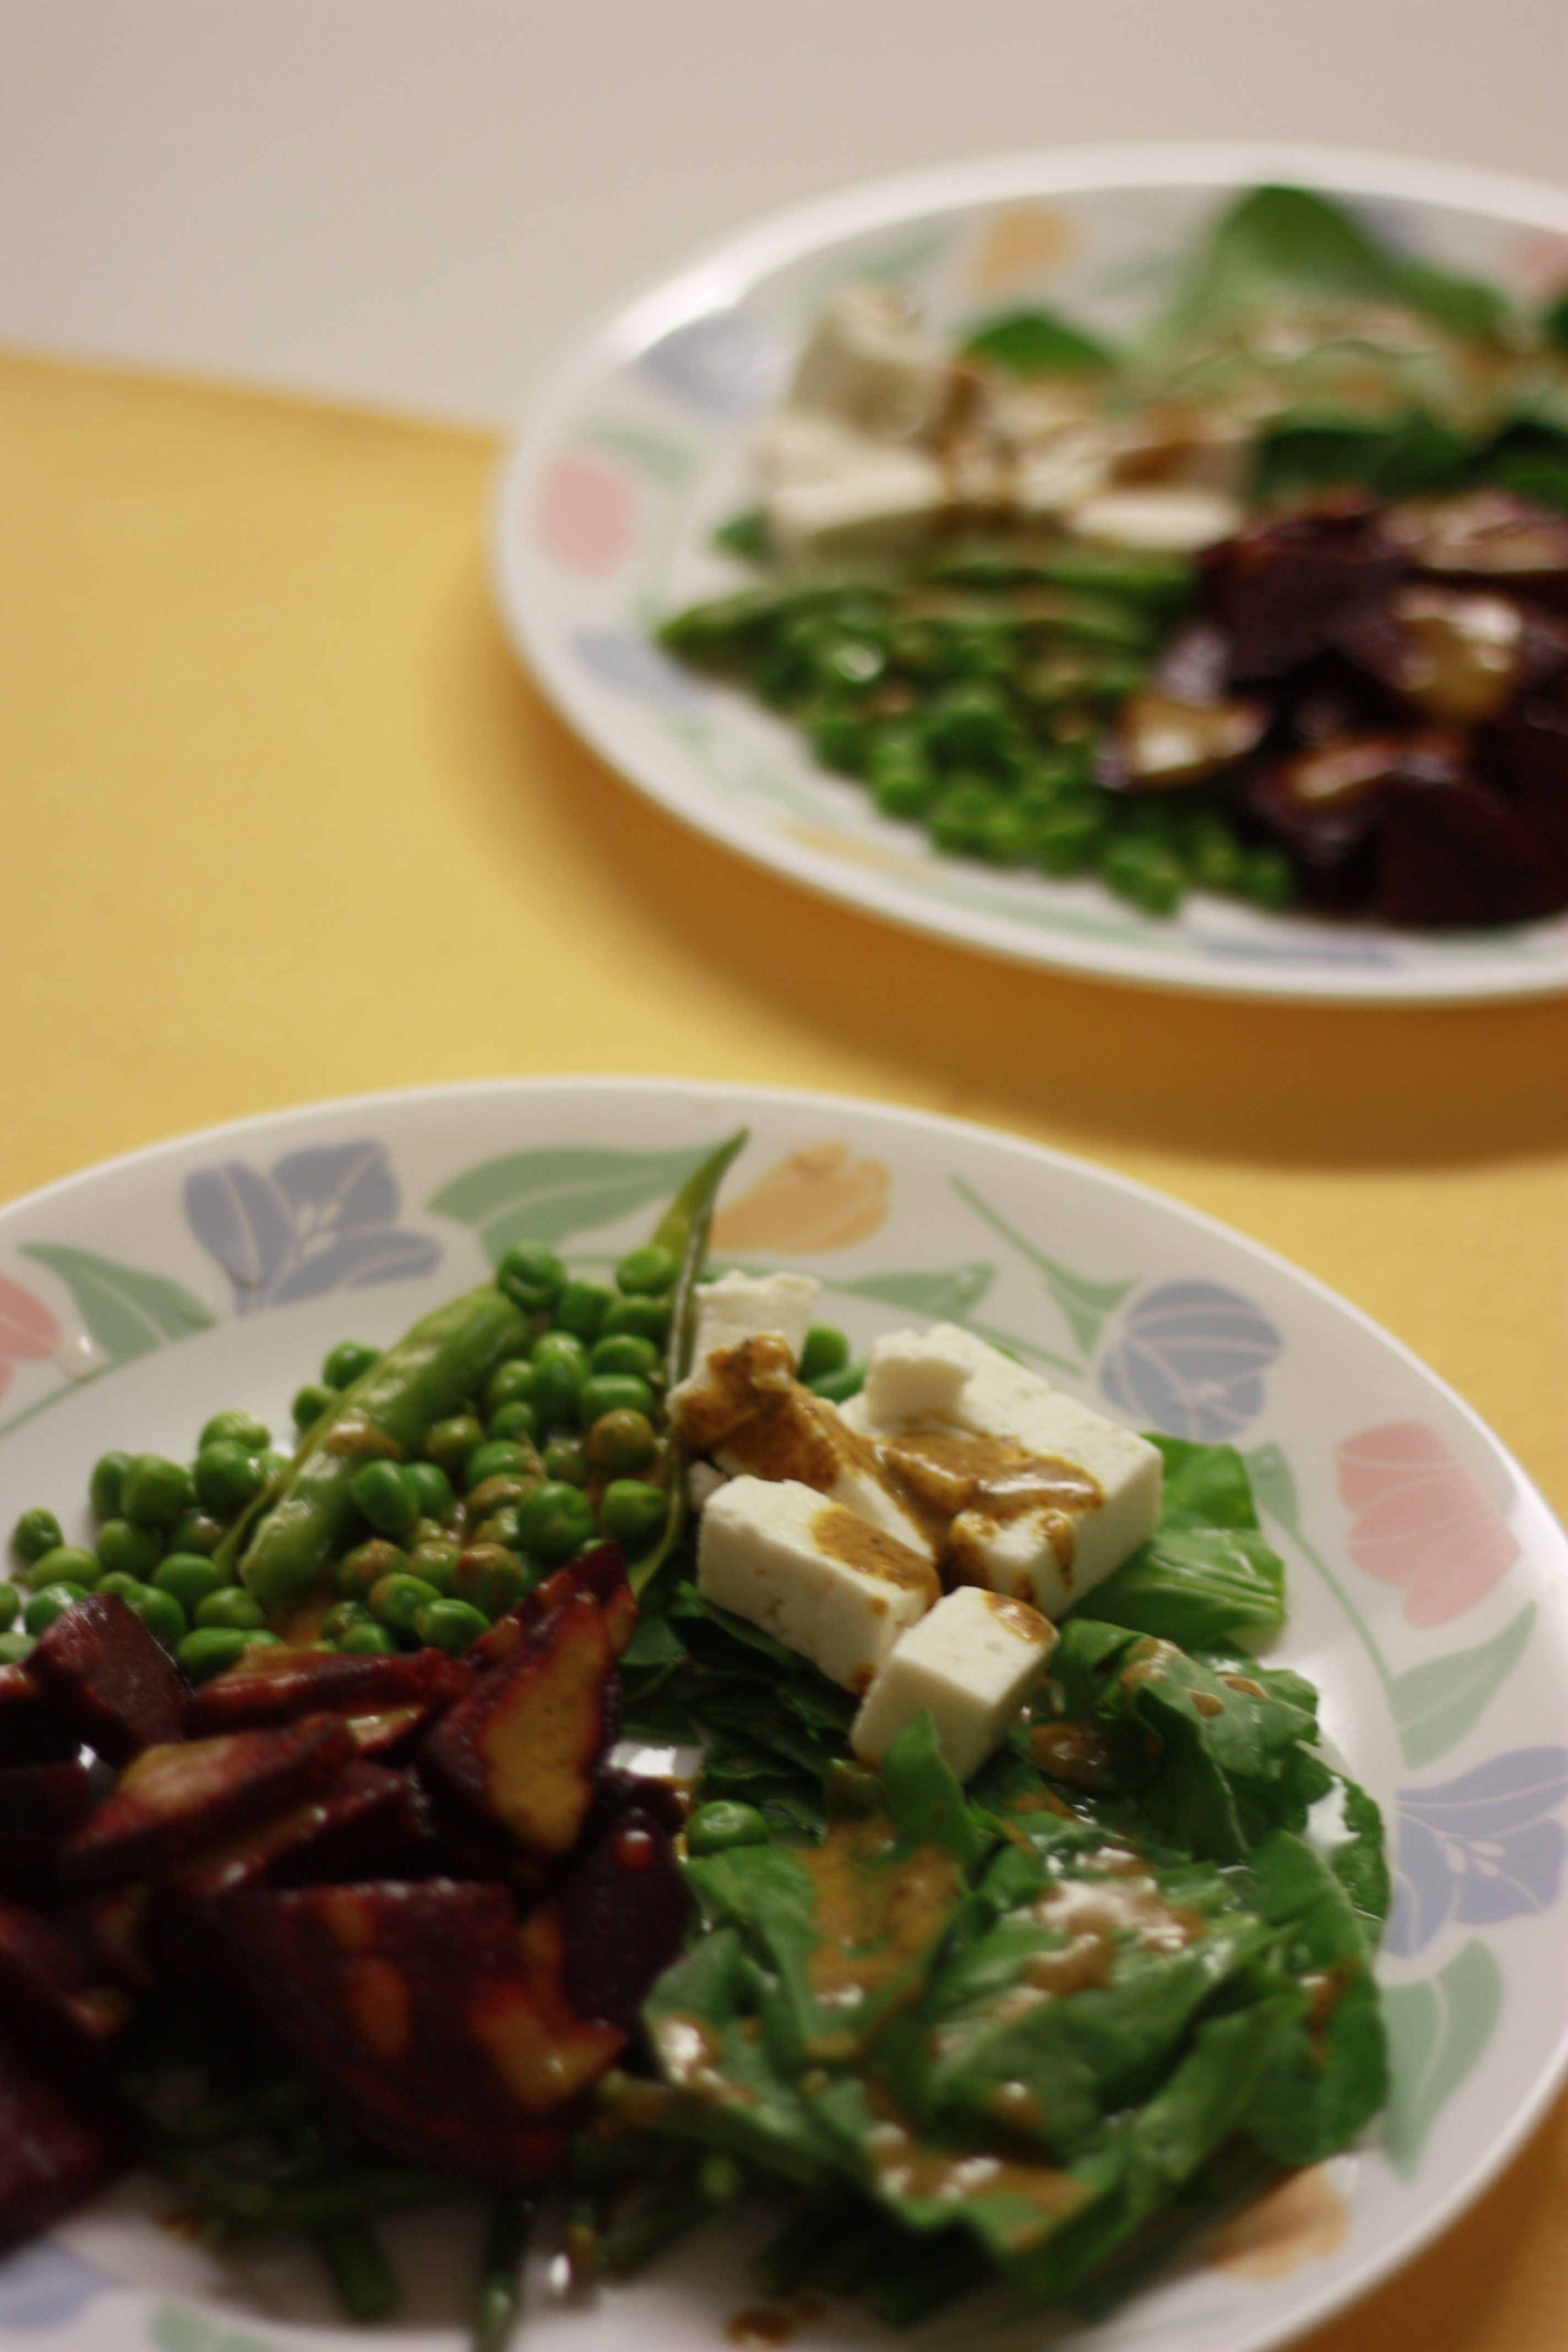 Beetroot, peas and cheese salad